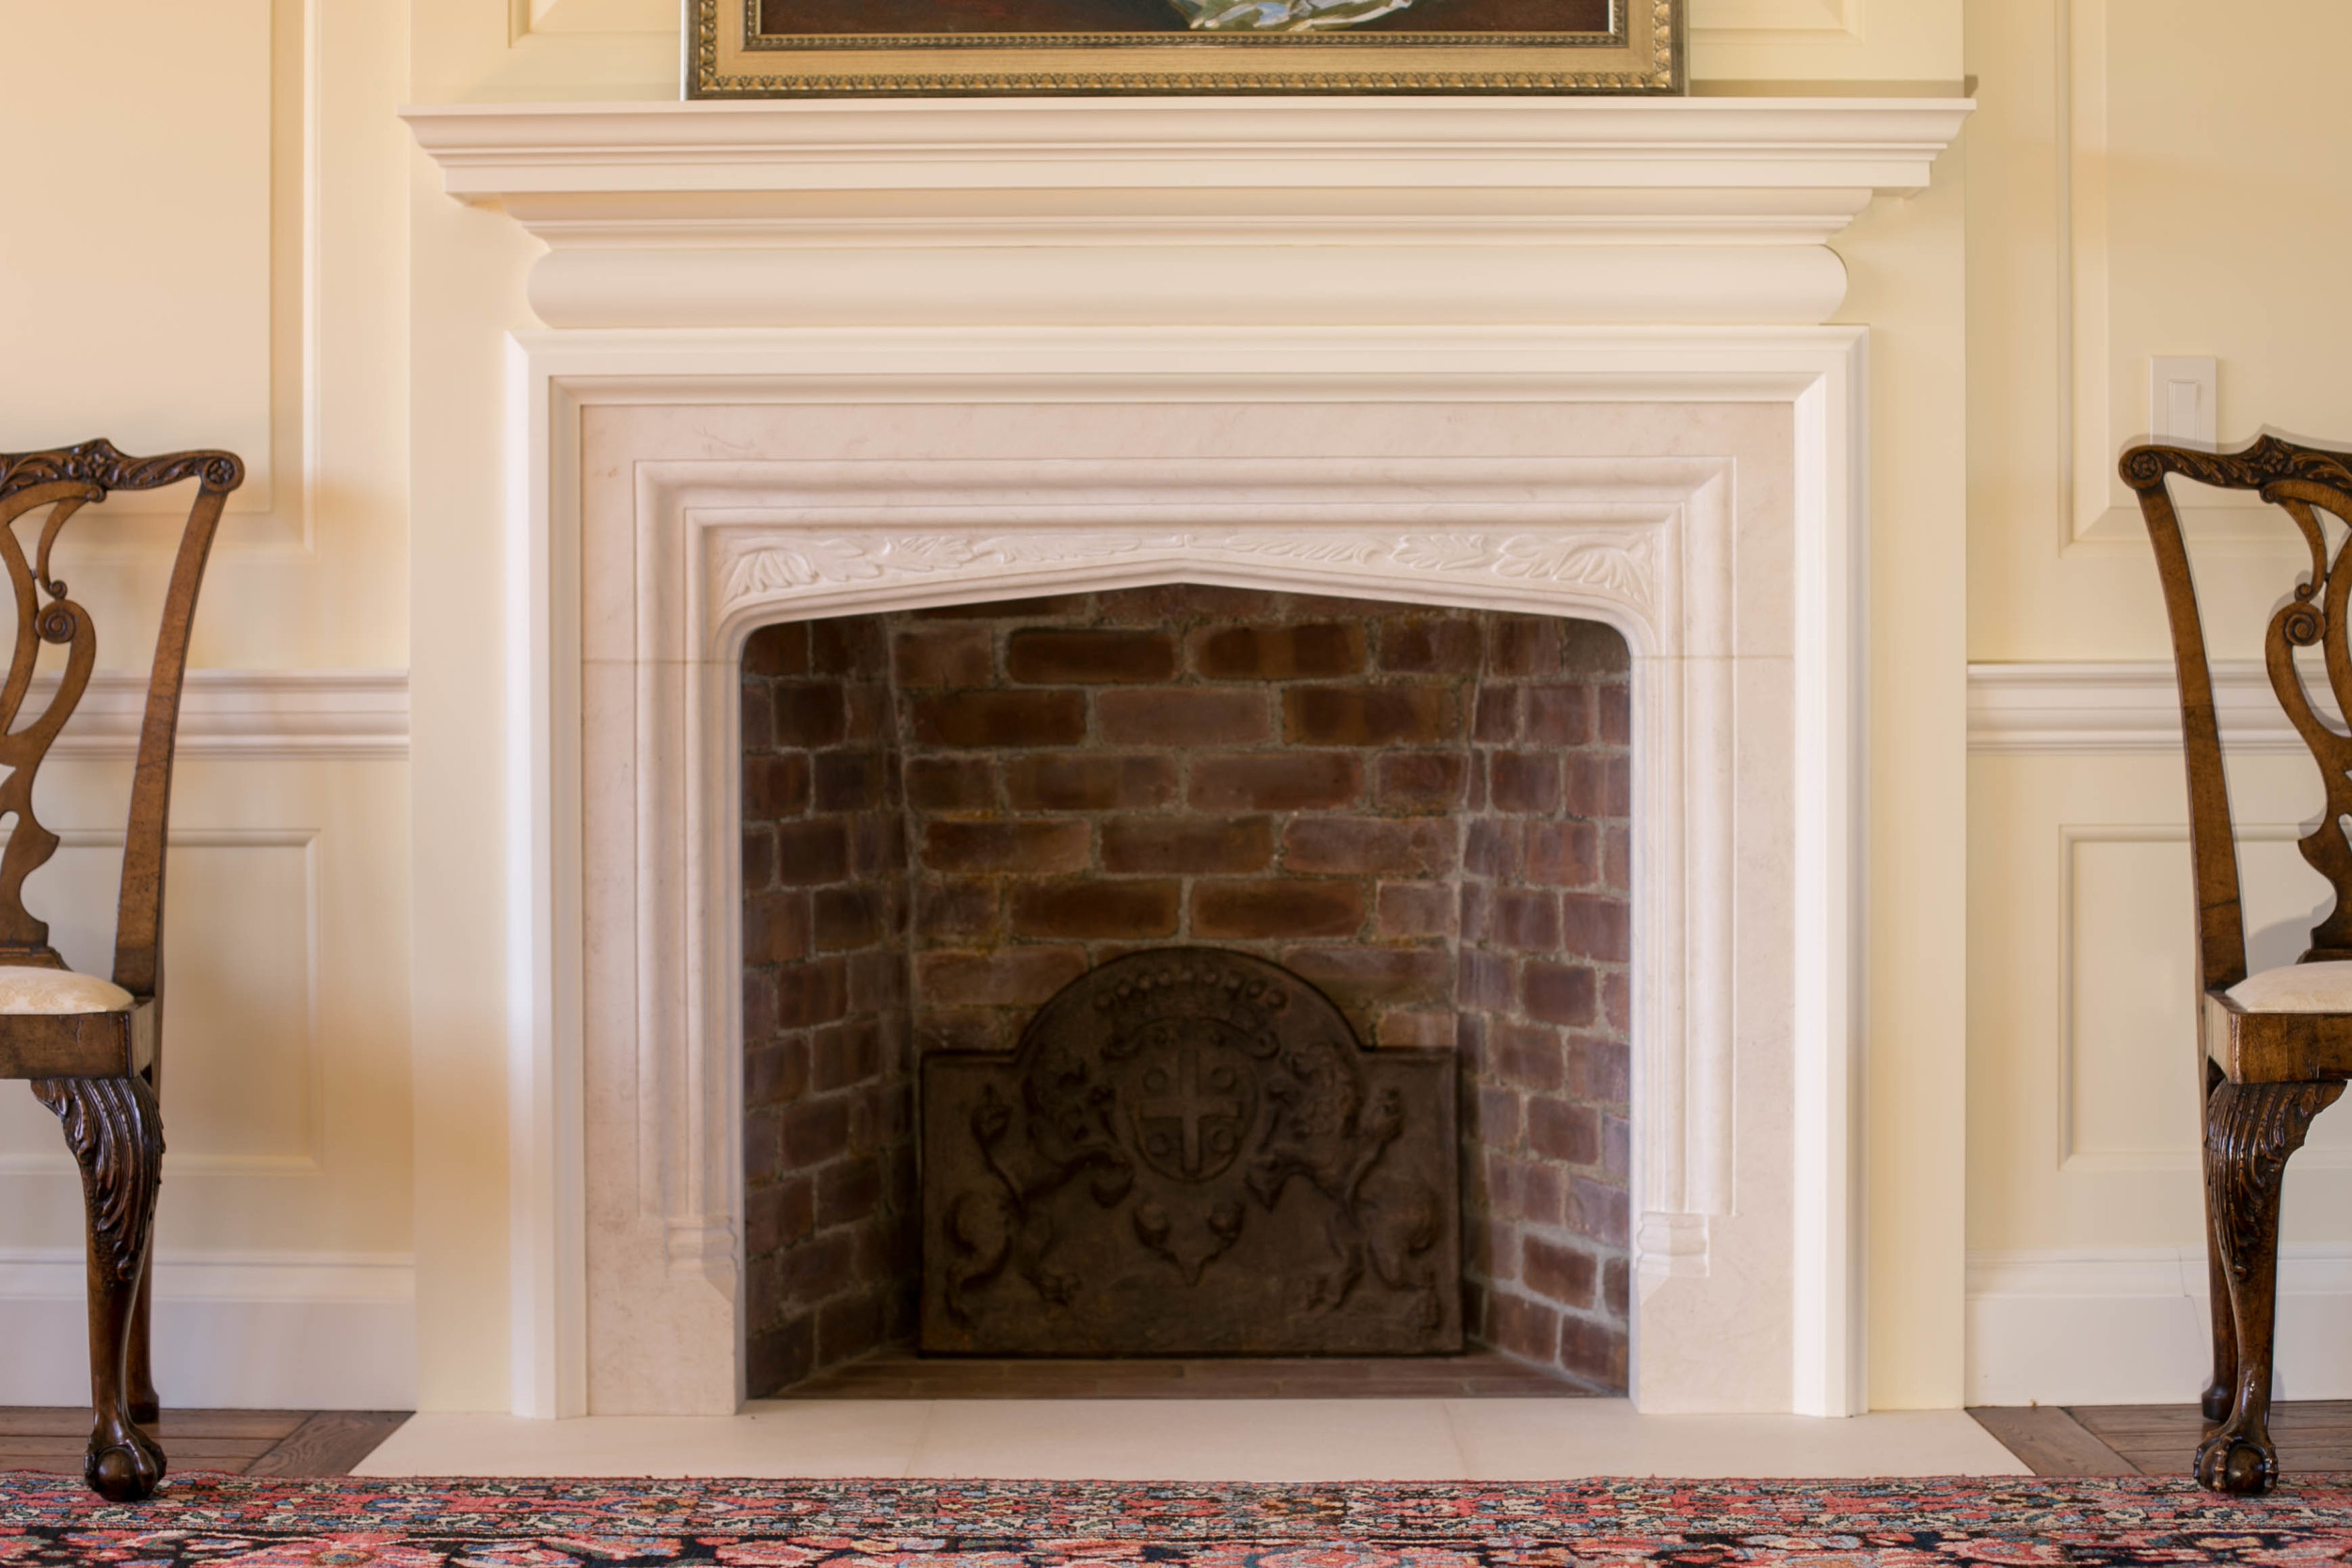 A stone mantel in the Tudor style with foliate carving to the spandrels in English Bathstone